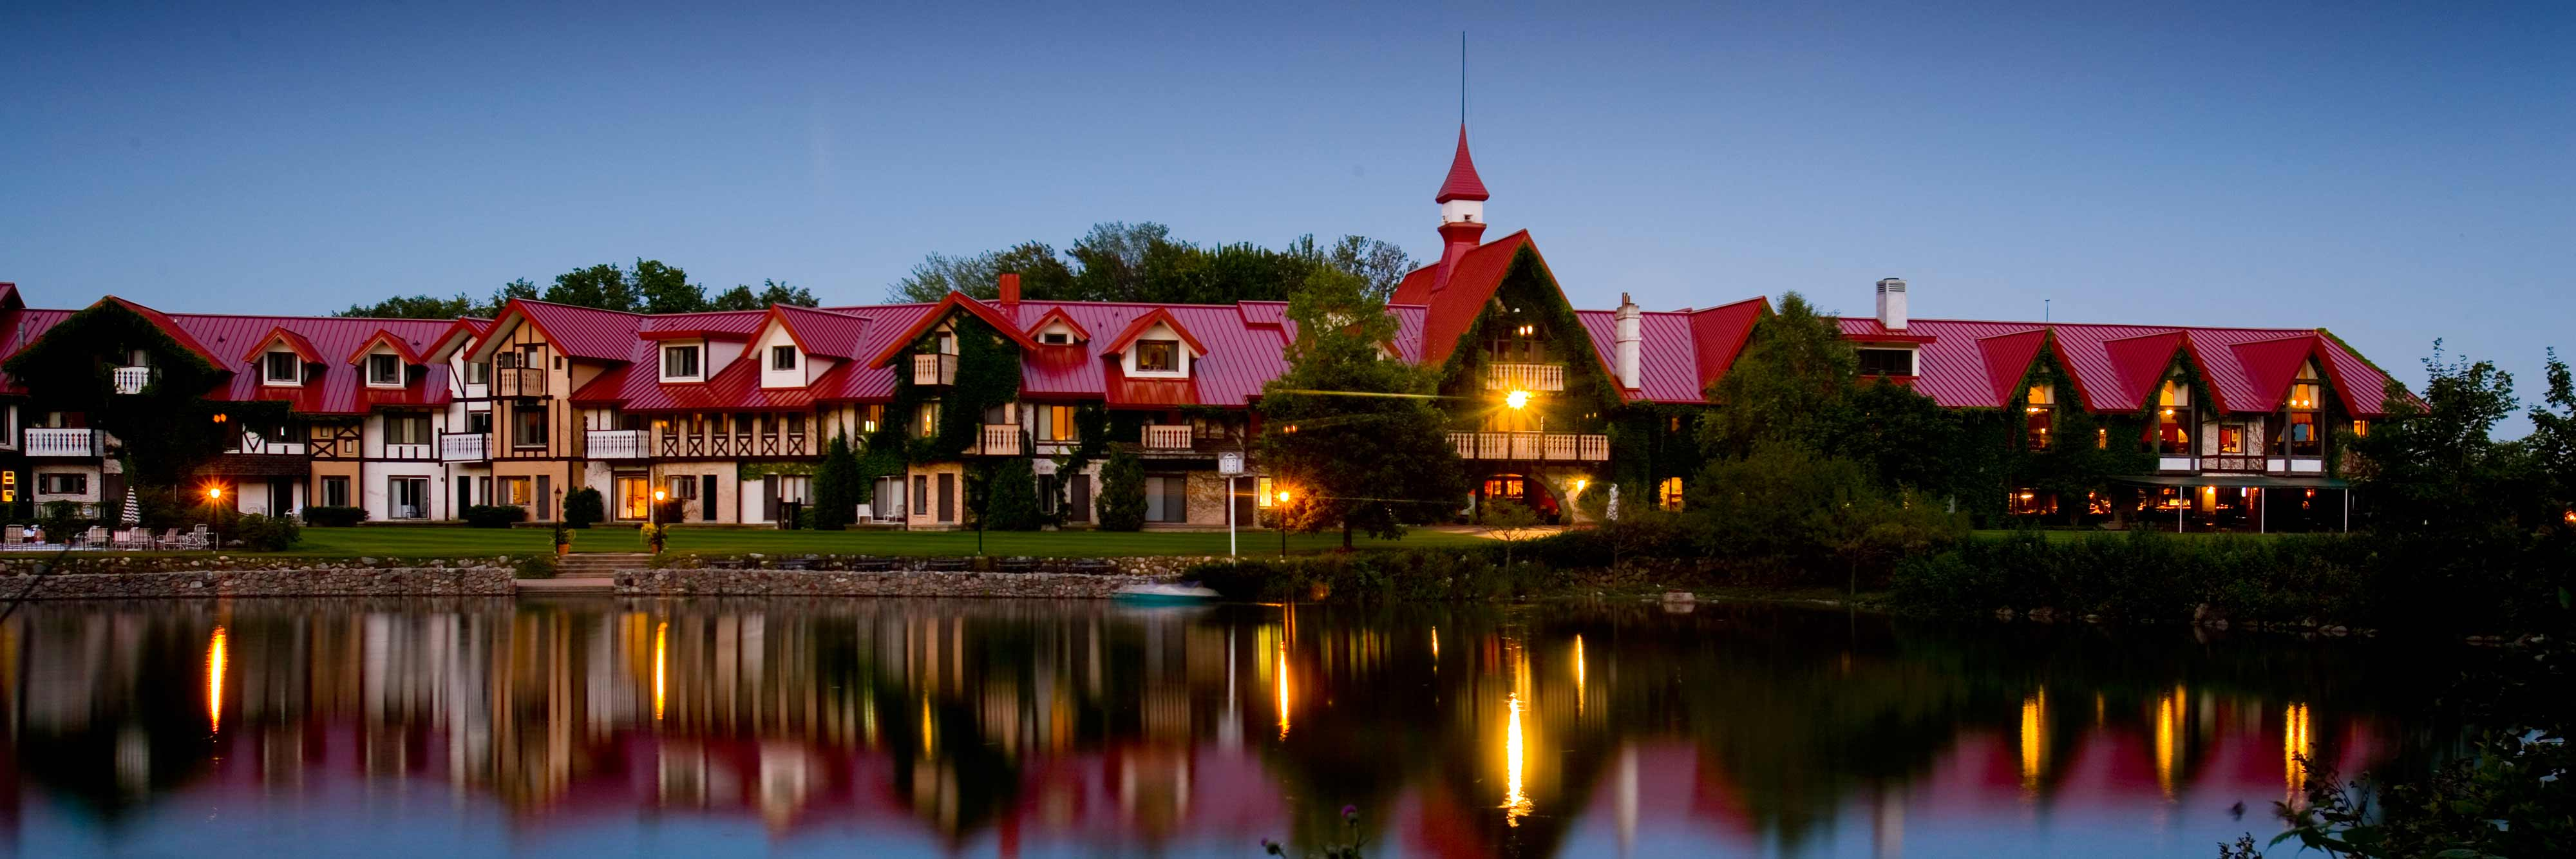 A night view of The Main Lodge at Boyne Highlands Resort.